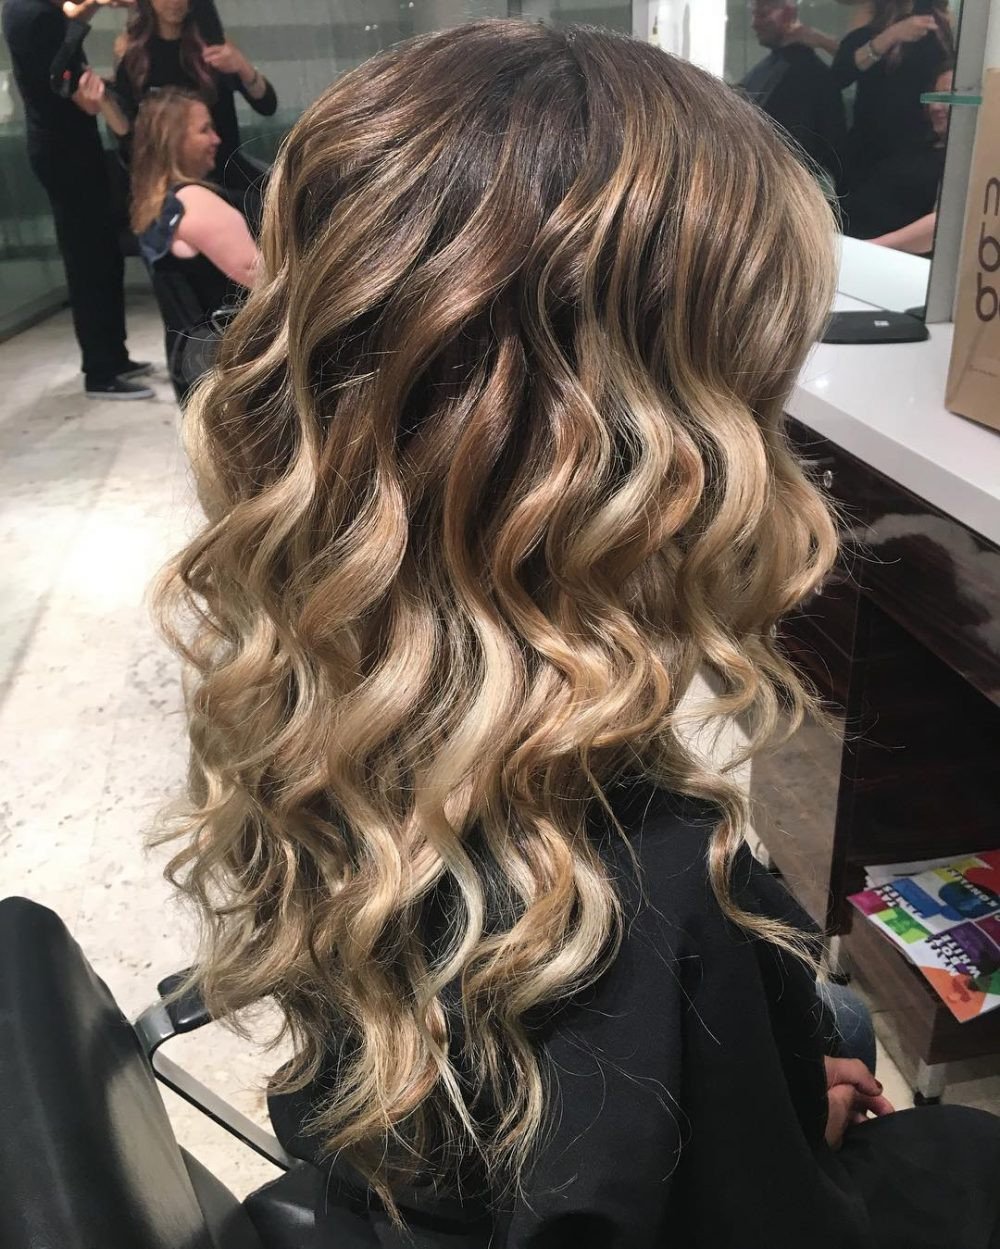 Best ideas about Wavy Hairstyles For Prom . Save or Pin Curly Hairstyles for Prom Now.